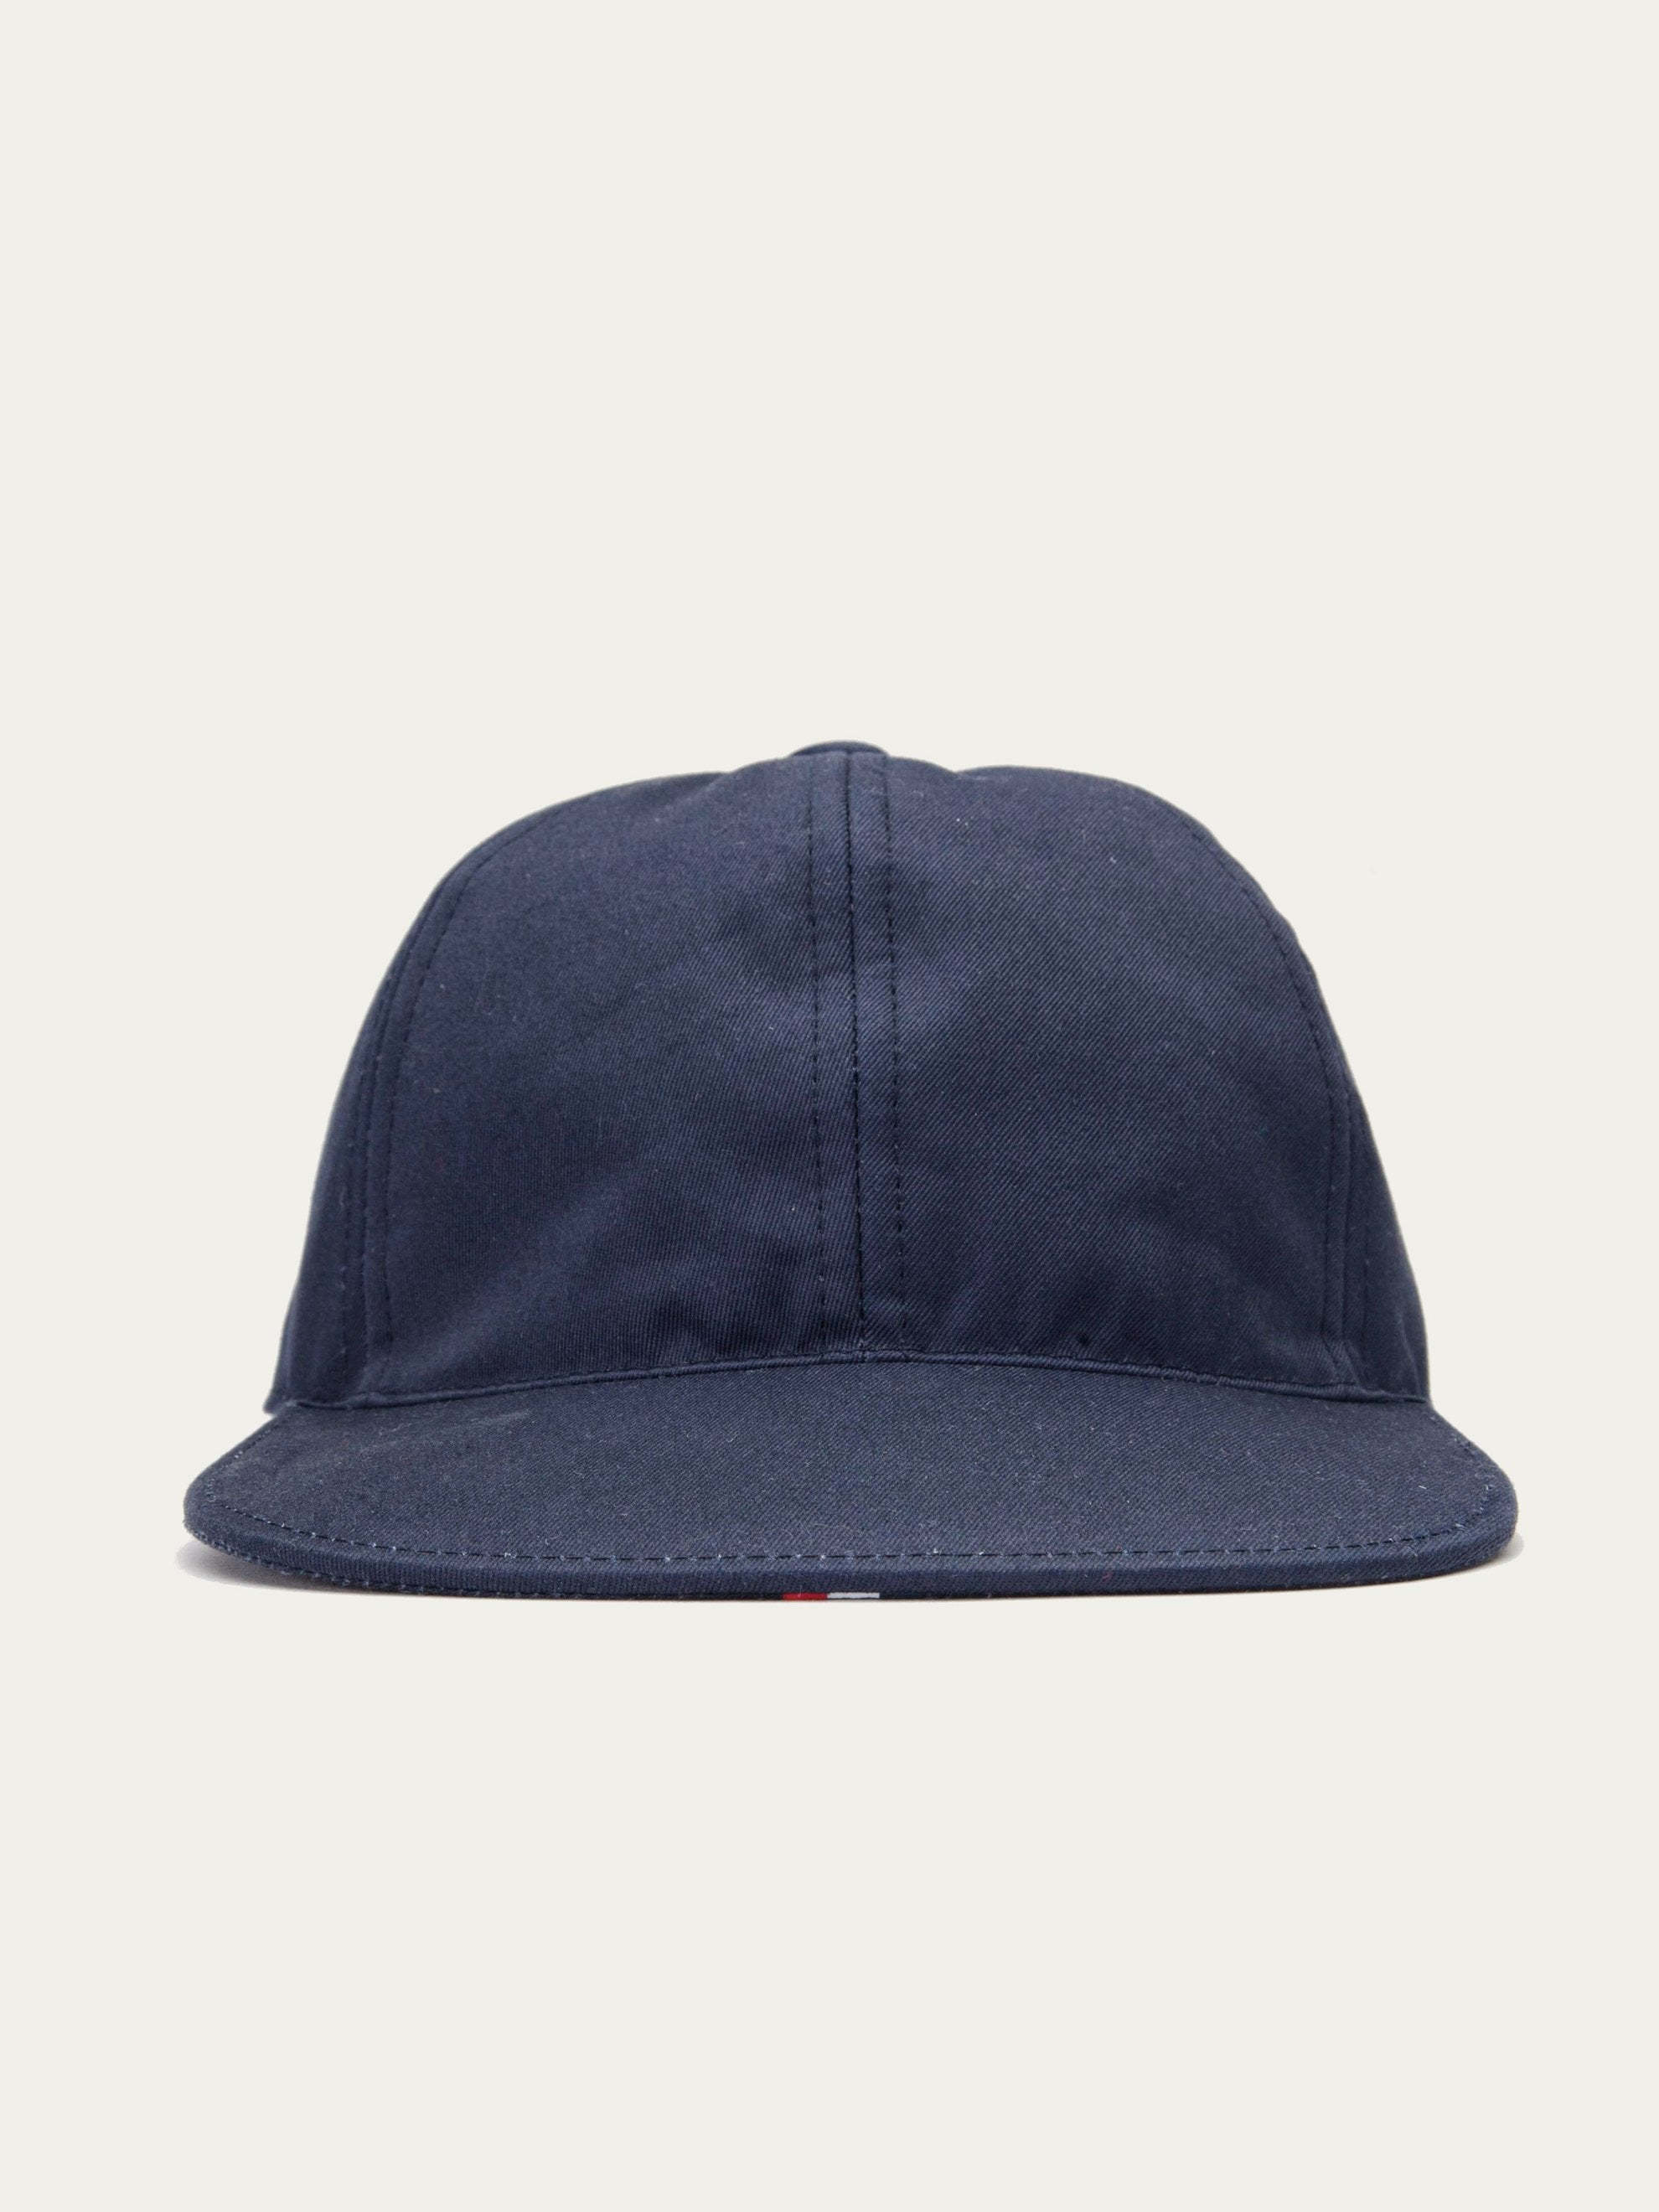 Med. Grey 6-Panel Baseball Cap (RWB Seam Tape/Cotton Twill) 1